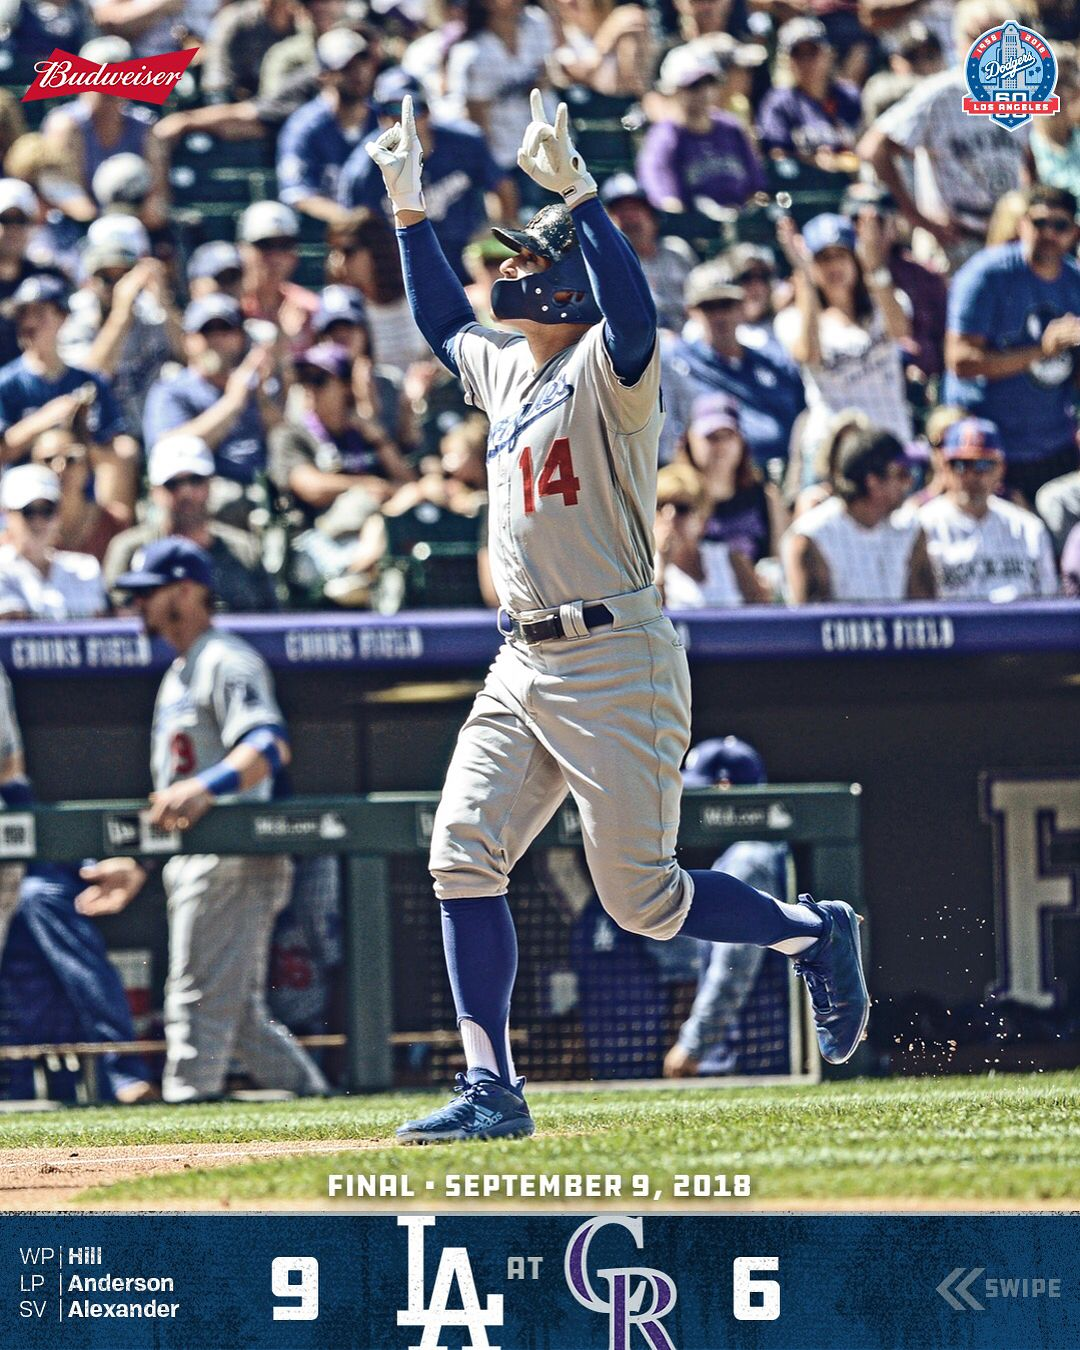 RECAP   kikehndez homers  redturn2 goes 4-for-5 with a two-run home run to  lift  Dodgers in 9-6 victory over Rockies and move within a half-game of  first. ec660fd6636